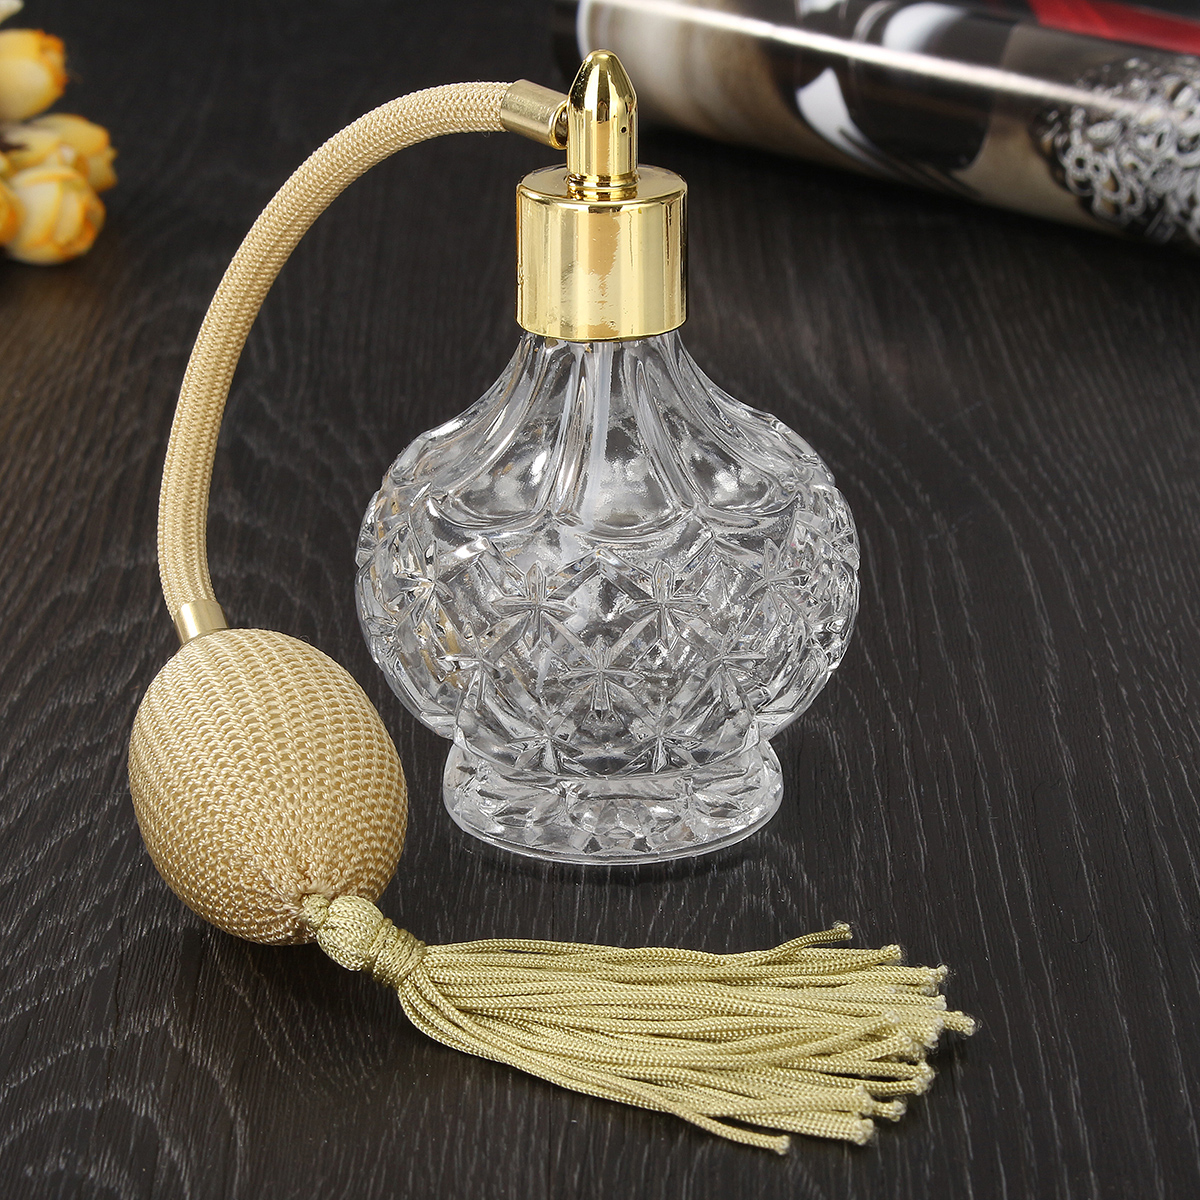 80ml Clear Crystal Vintage Empty Perfume Spray Bottle With Long Tassels Perfume Atomizer Pump Refillable Glass Bottles Lady Gift80ml Clear Crystal Vintage Empty Perfume Spray Bottle With Long Tassels Perfume Atomizer Pump Refillable Glass Bottles Lady Gift